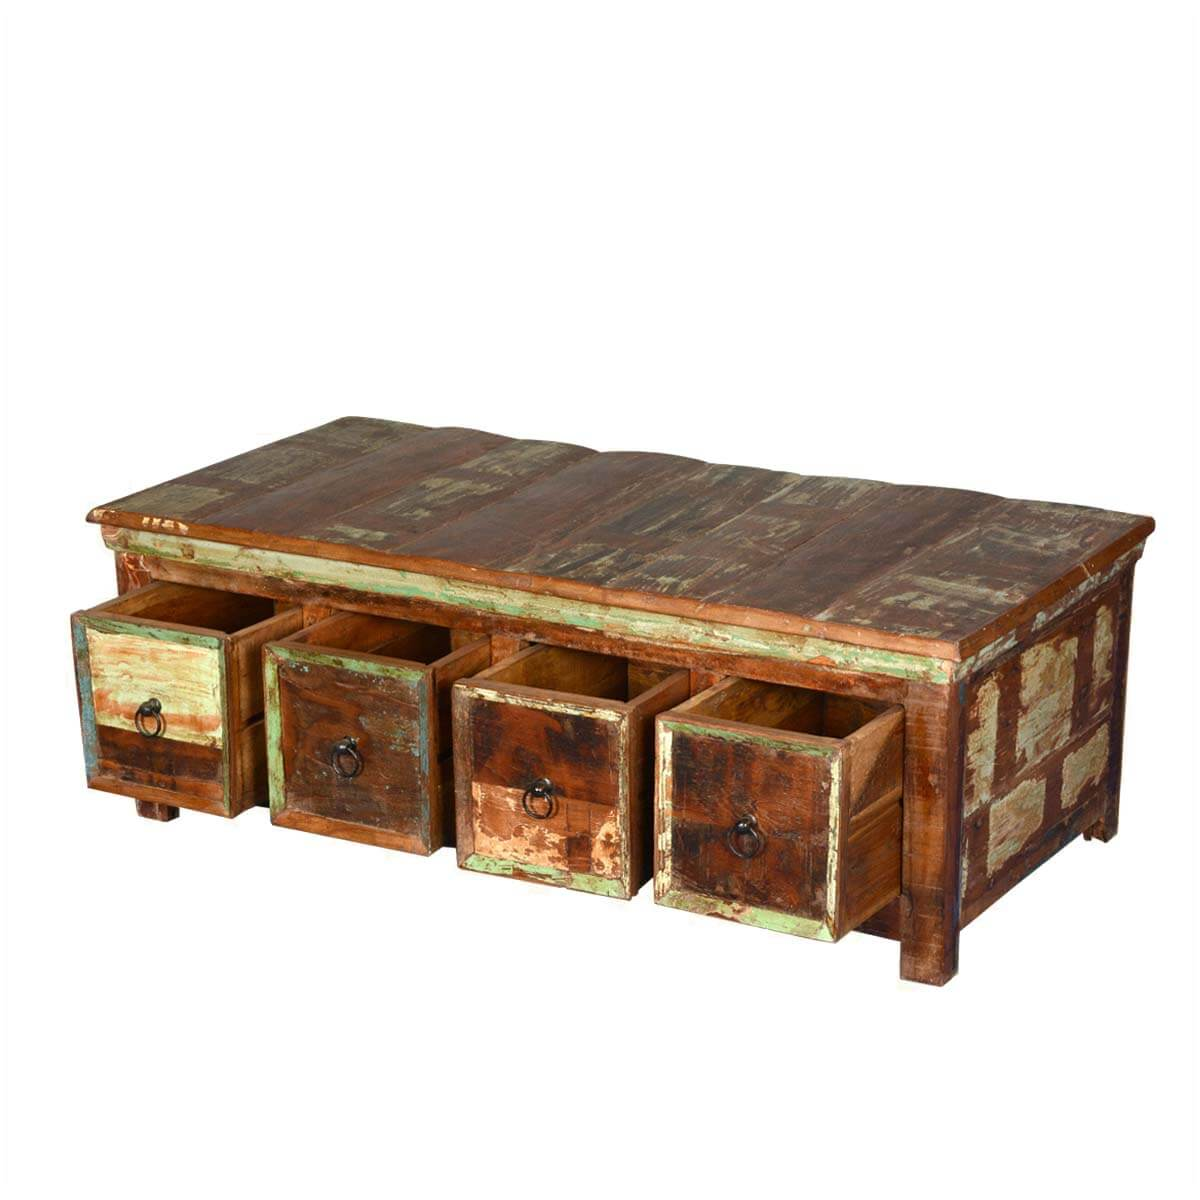 Rustic reclaimed wood coffee table with storage drawers